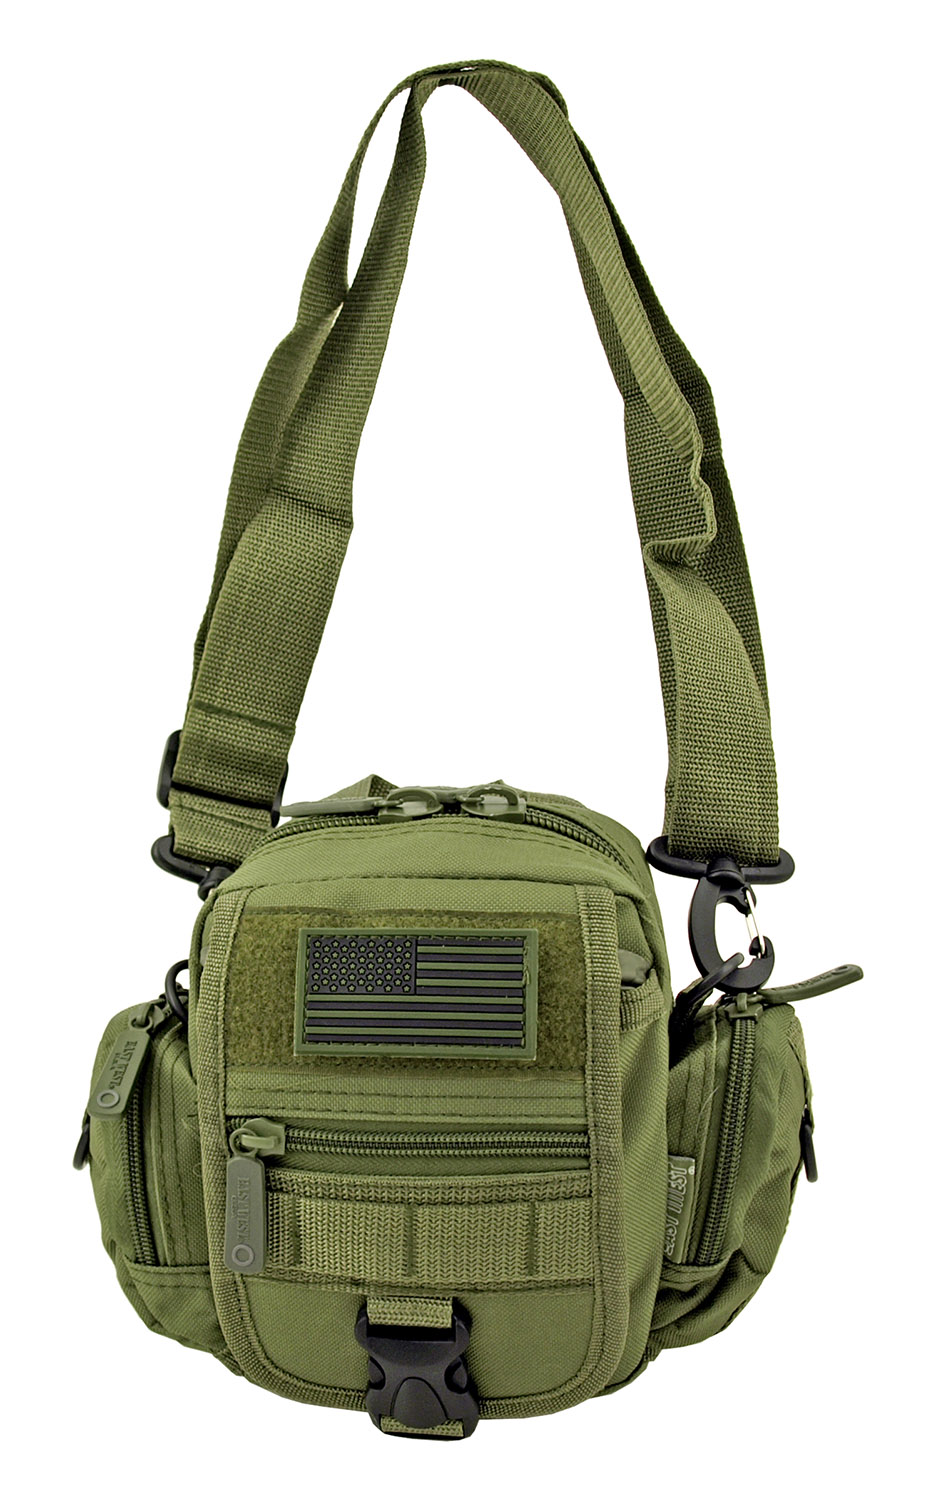 Multi-Functional Tactical Utility Backpack Fanny Pack - Olive Green